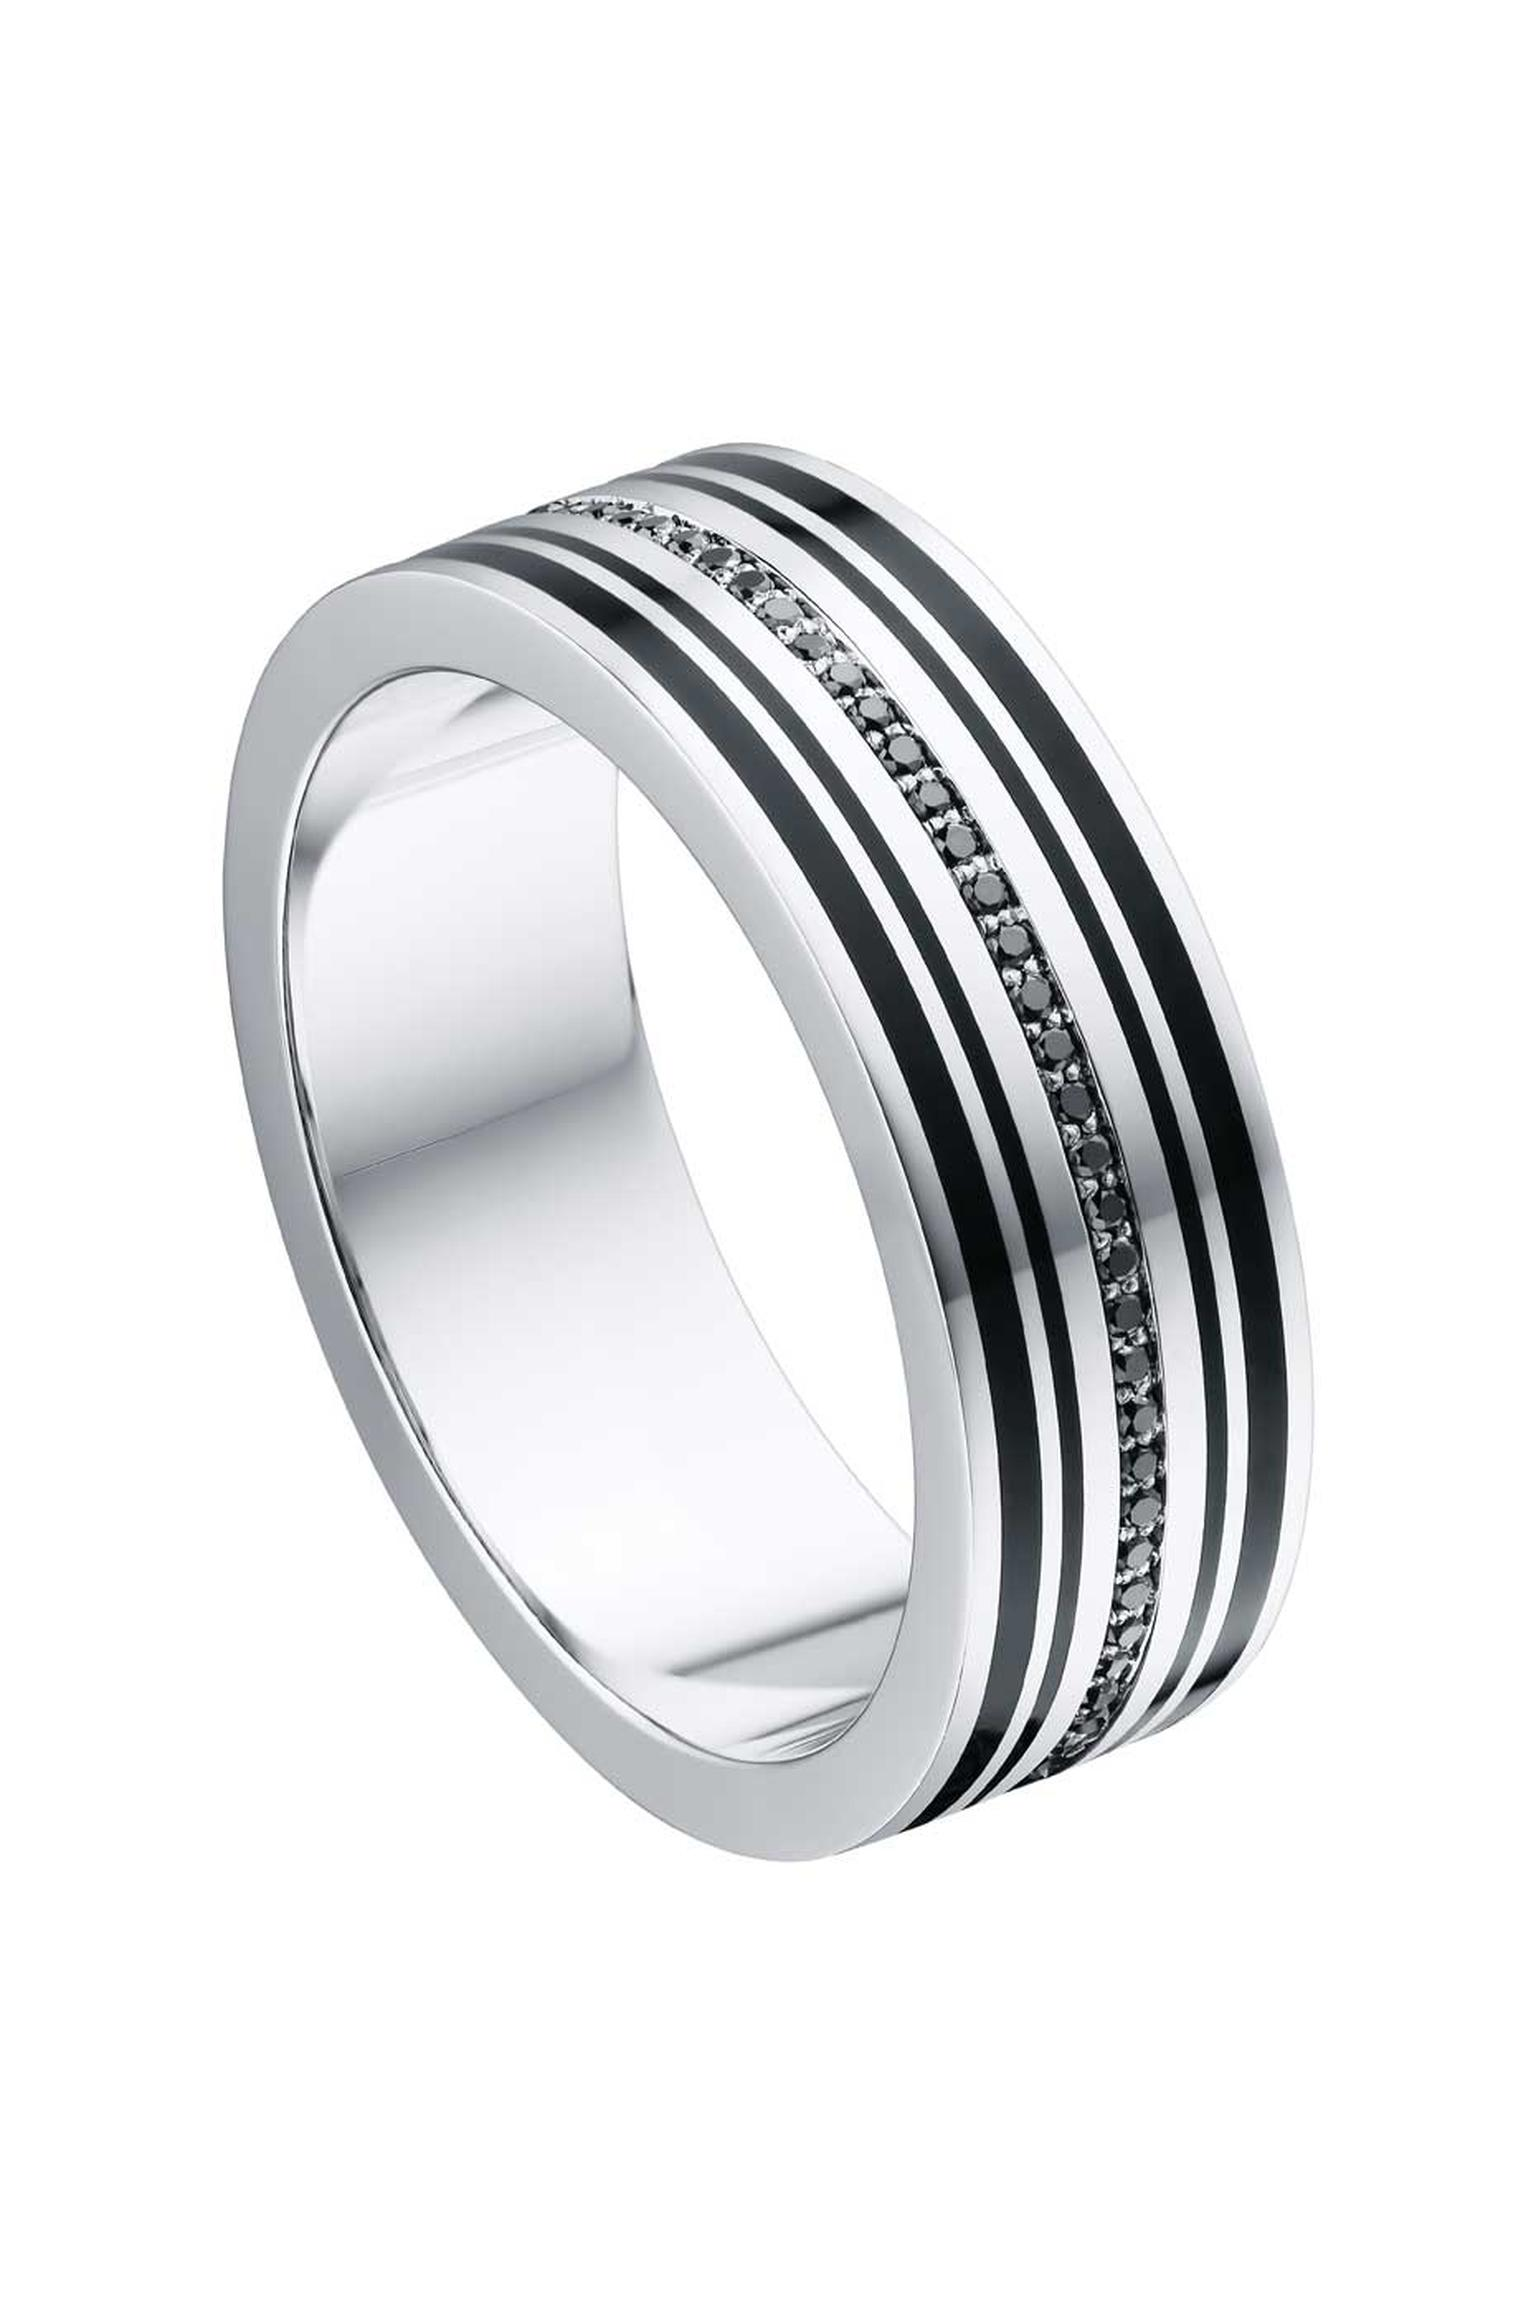 Alexander Arne ring for men in white gold and enamel with black diamonds.